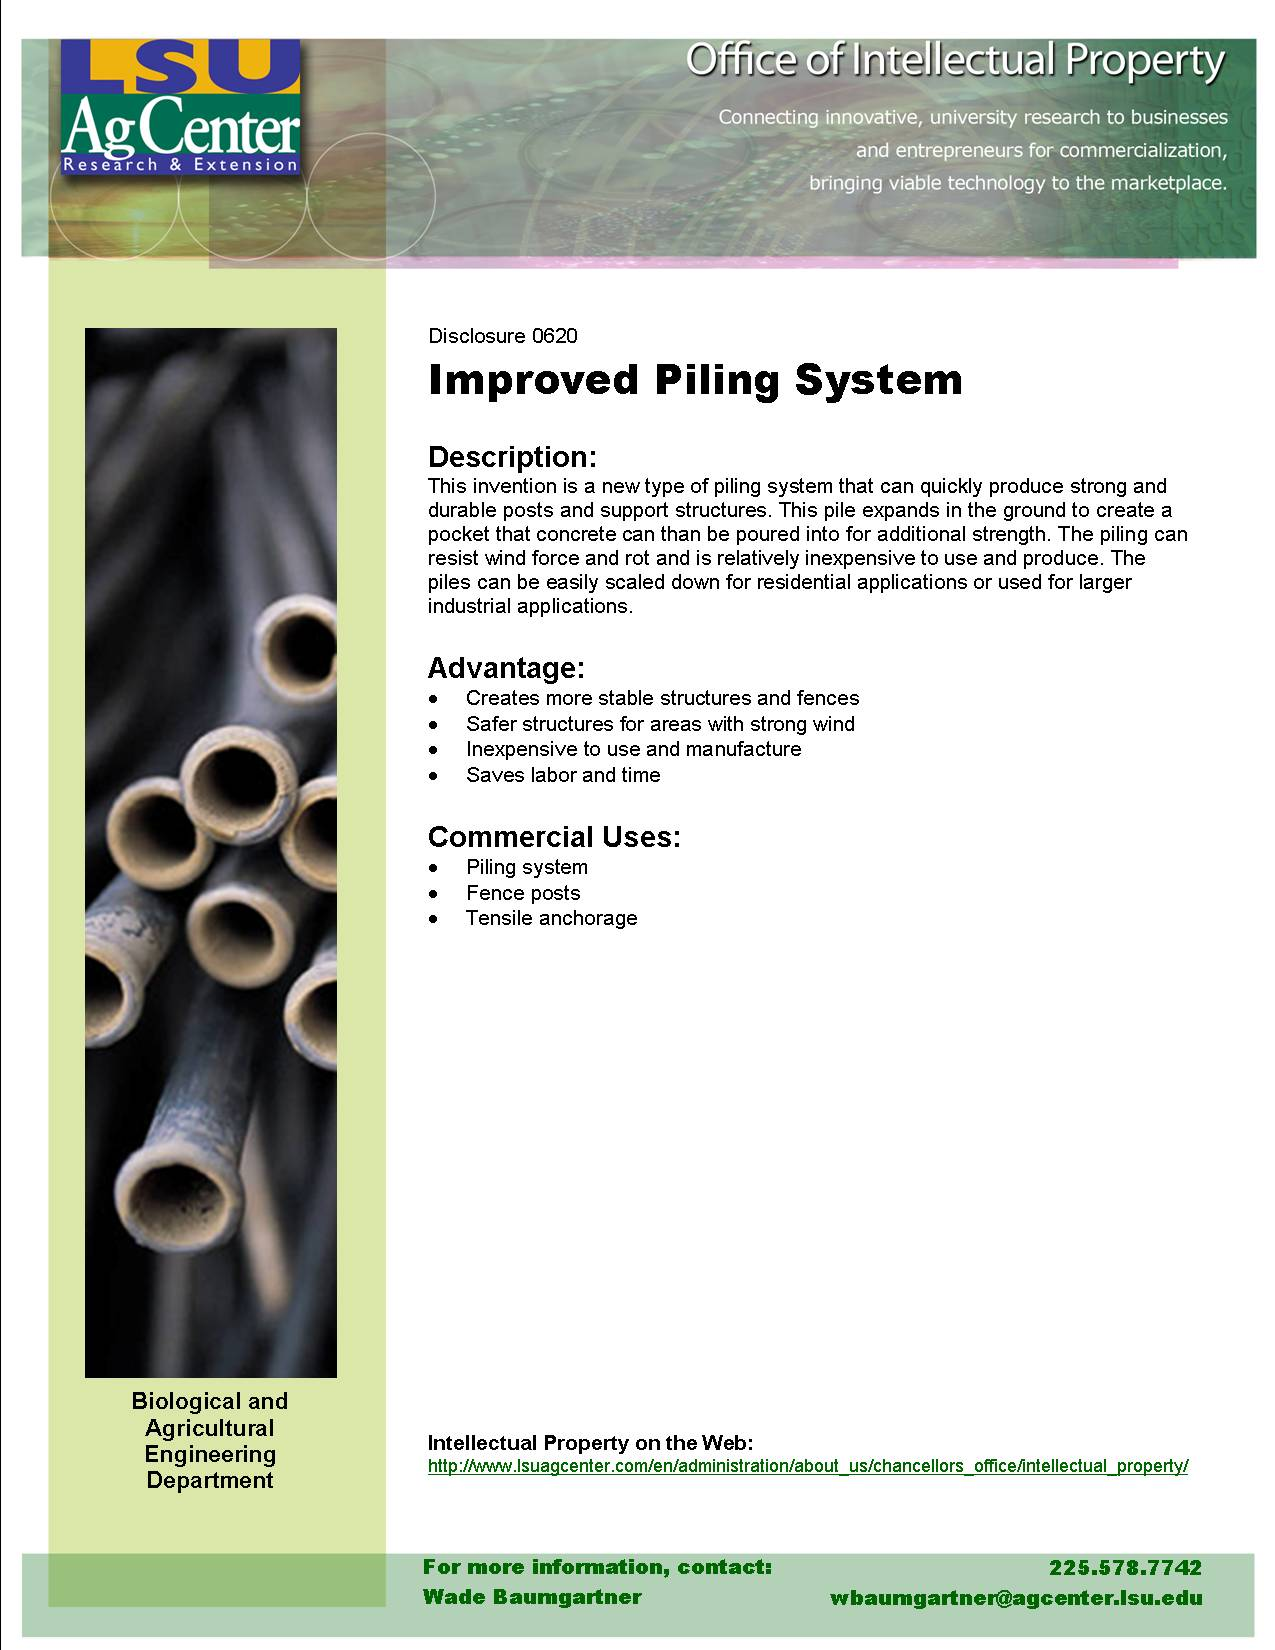 Improved Piling System